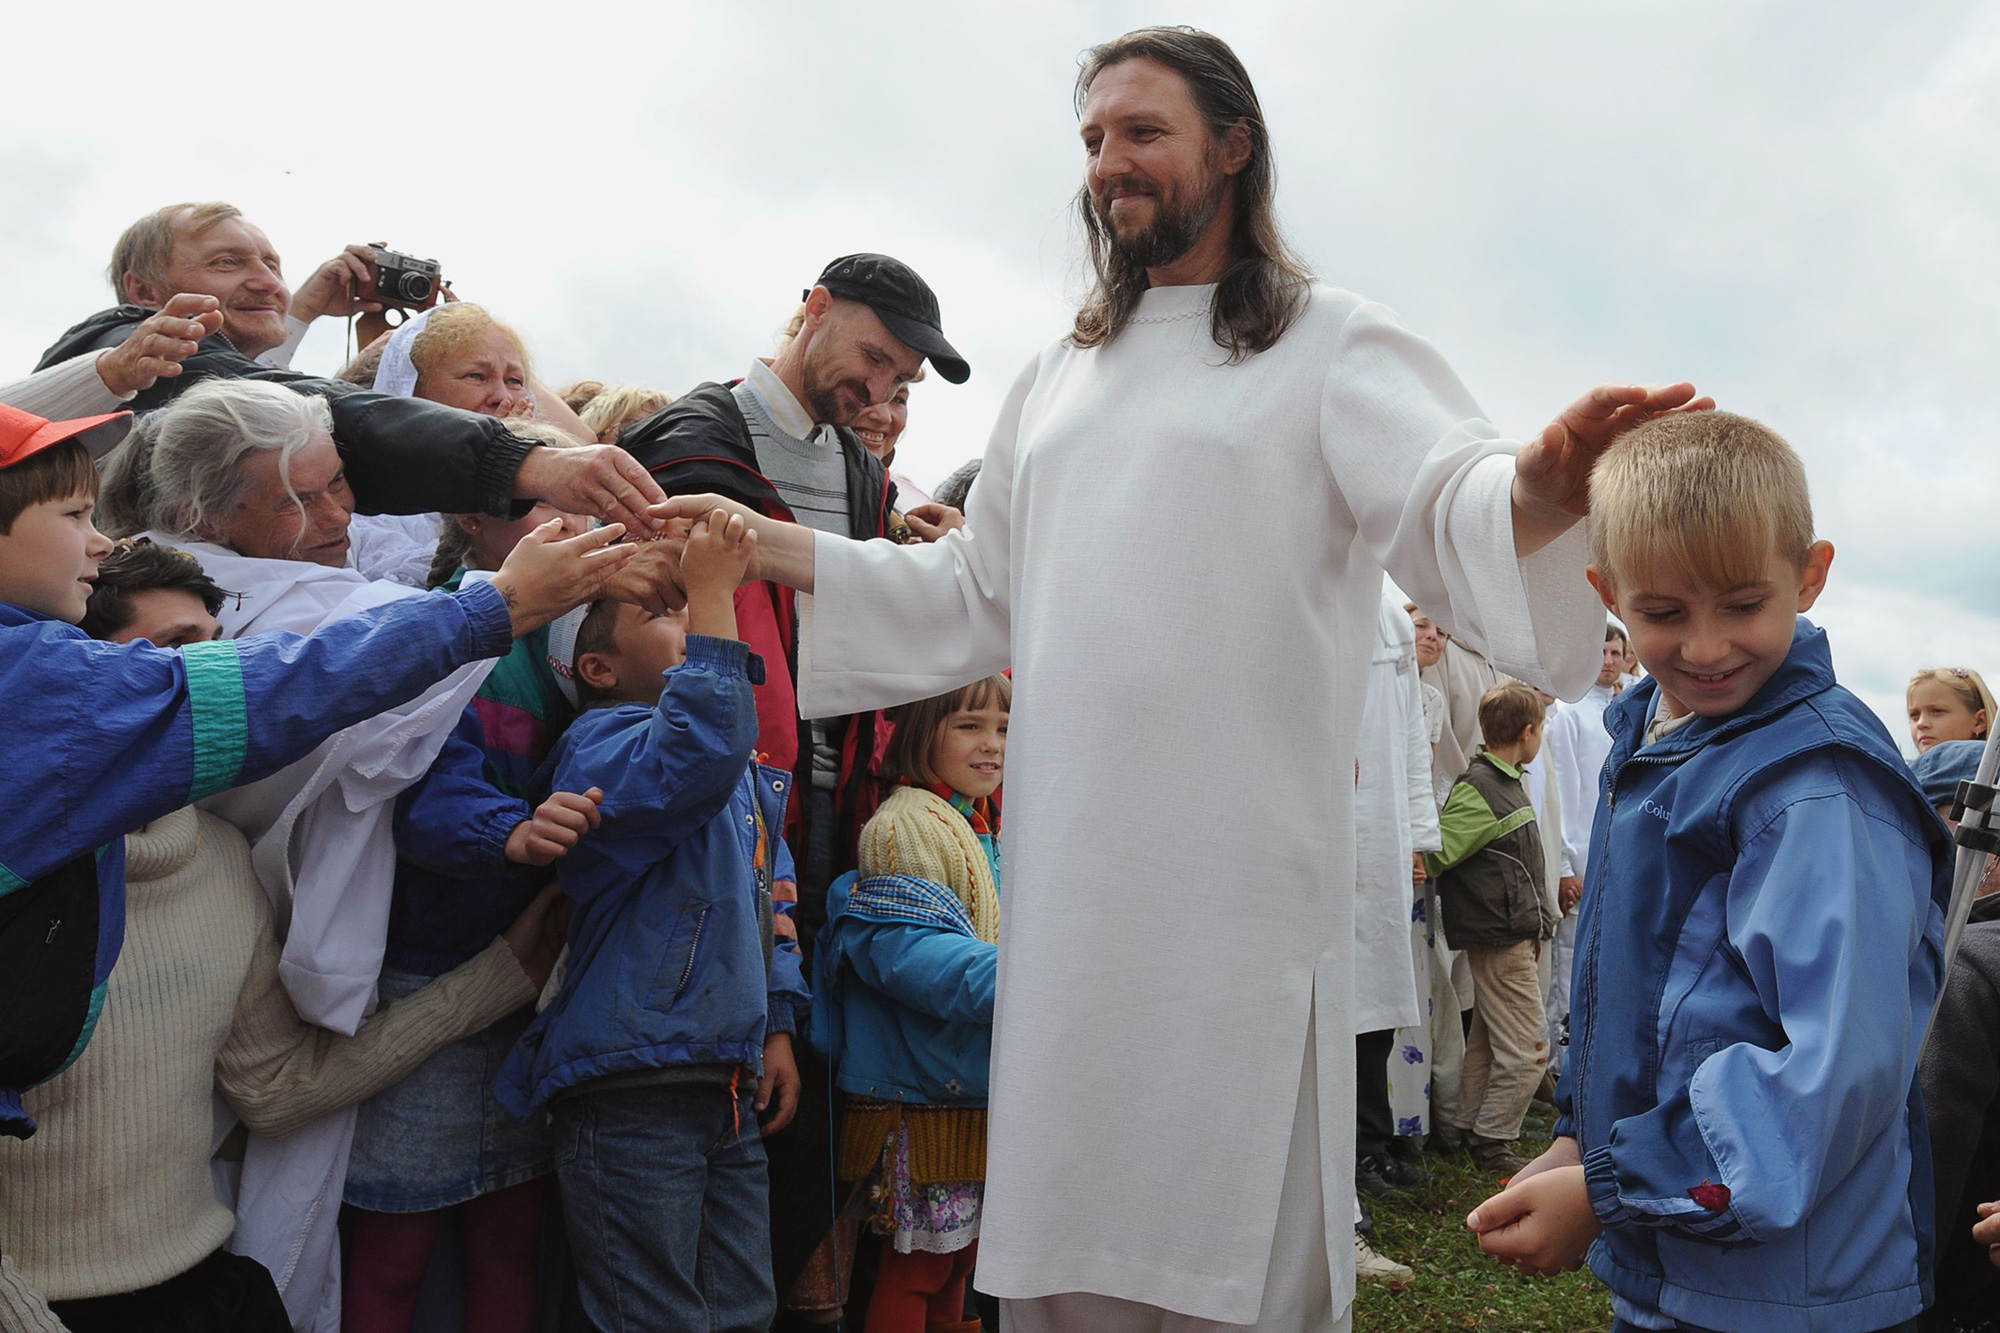 Siberian cult leader claiming to be Jesus arrested in Russia